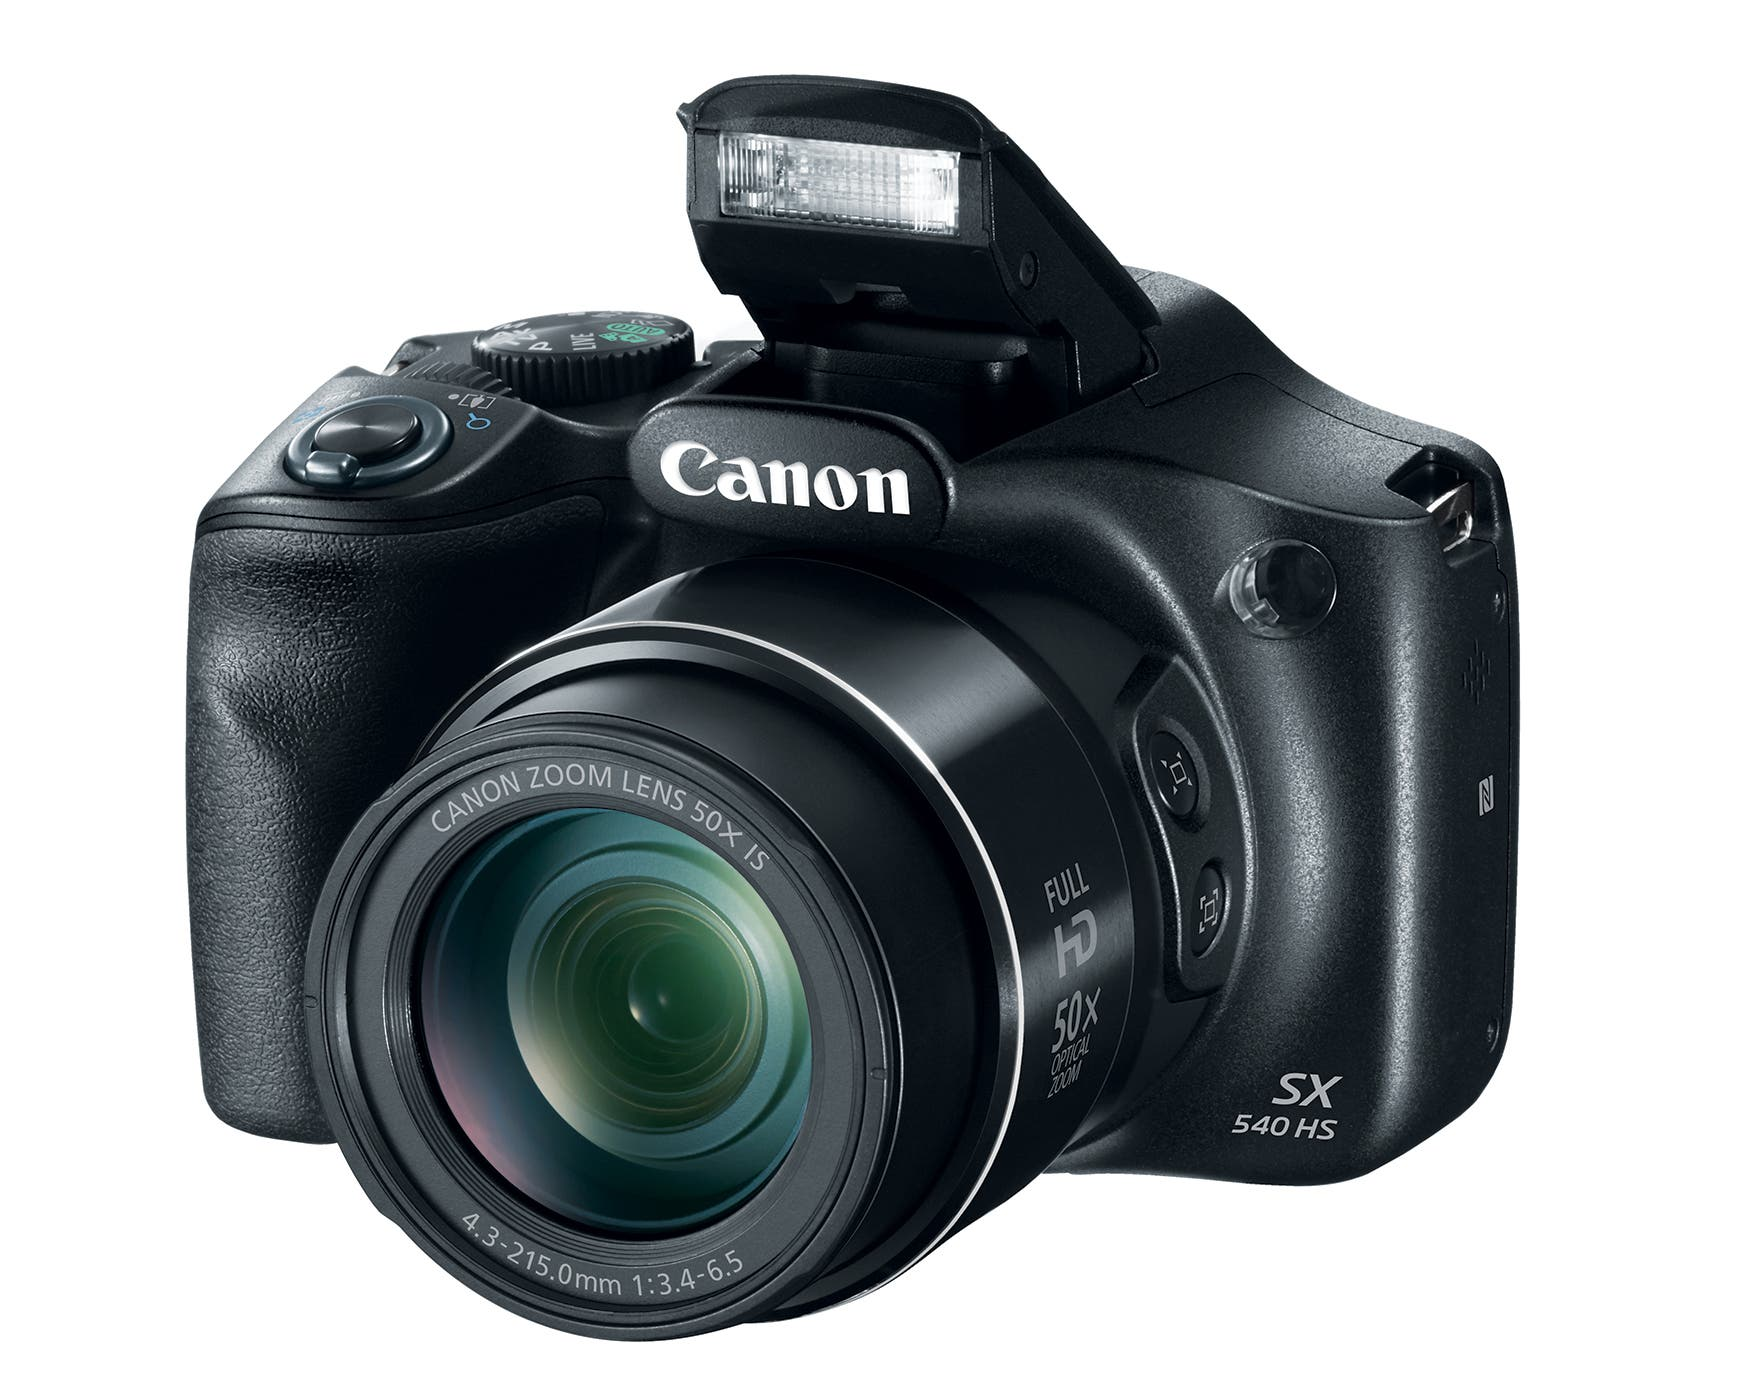 Video Camera Stabilizer >> New Canon PowerShot Cameras Are for the Average Person